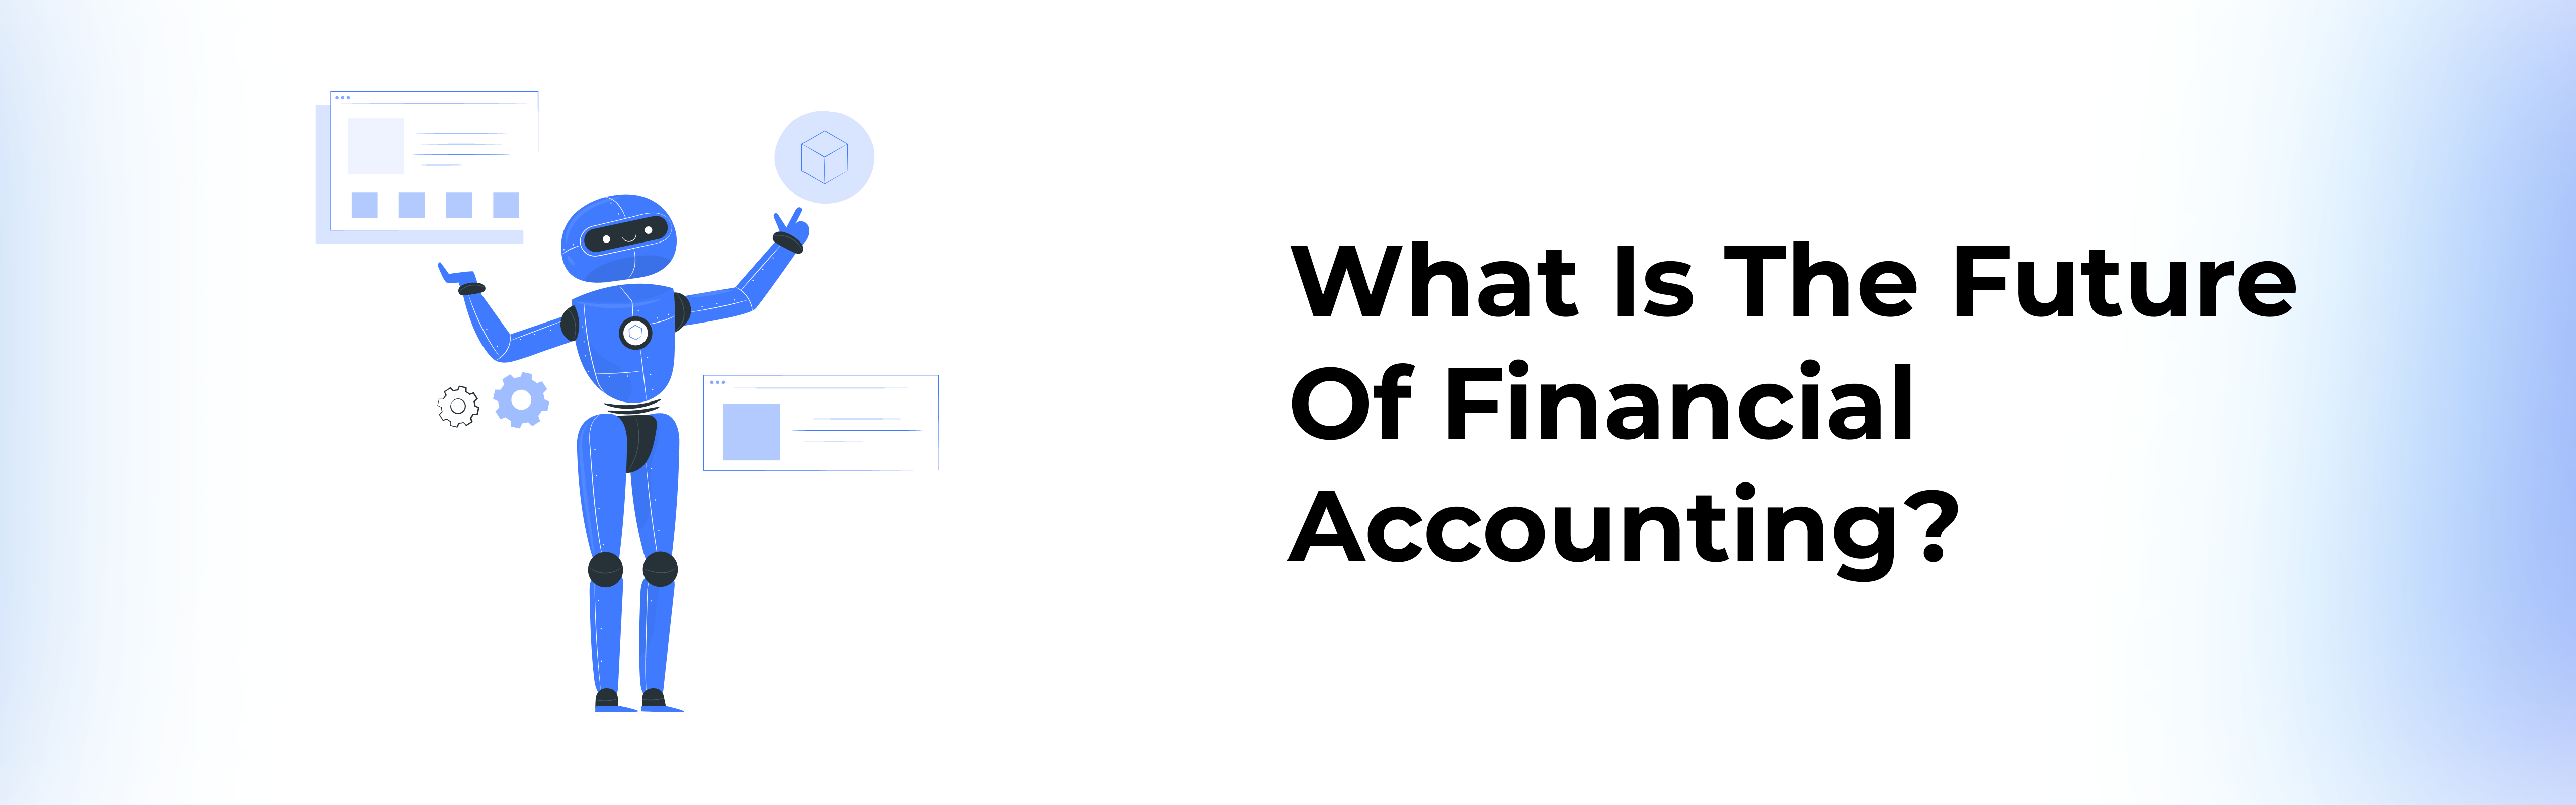 future-of-financial-accounting